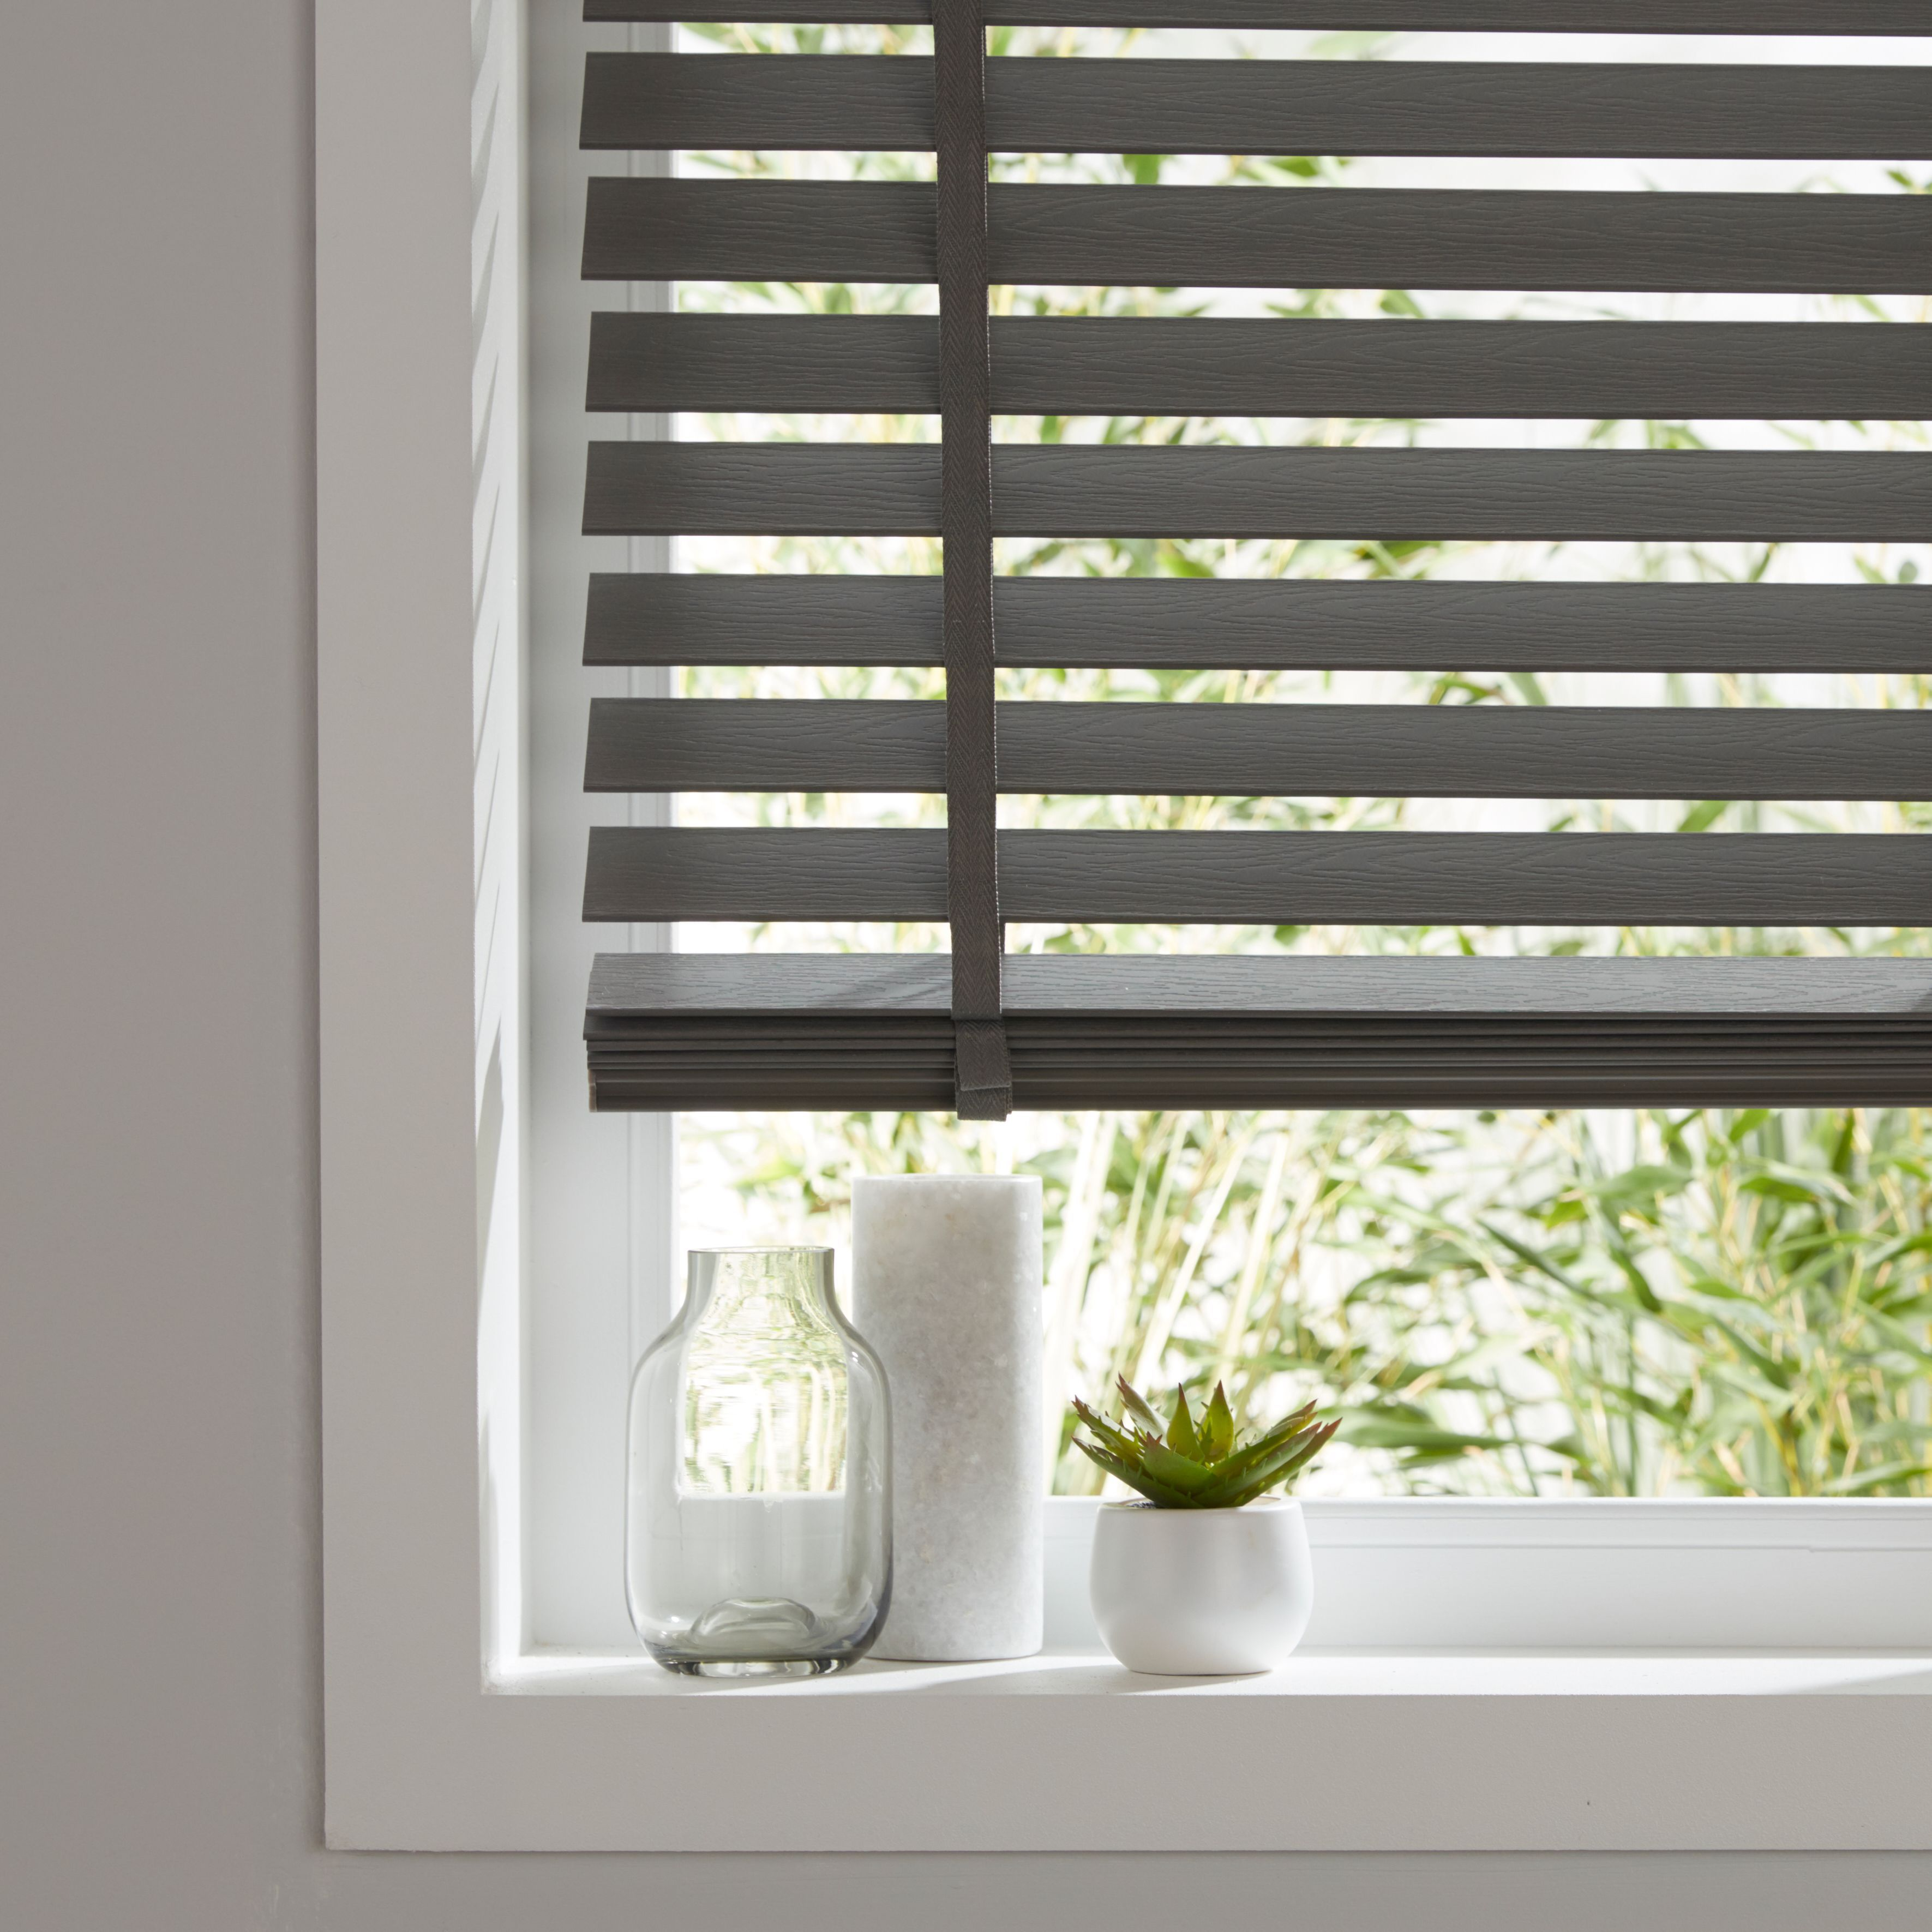 of thermatru internal for uk windows casement large u two and door imgid pella marvelous blinds sliding mini appealing styles cleaner window gorgeous ideas pict glass enclosedinds